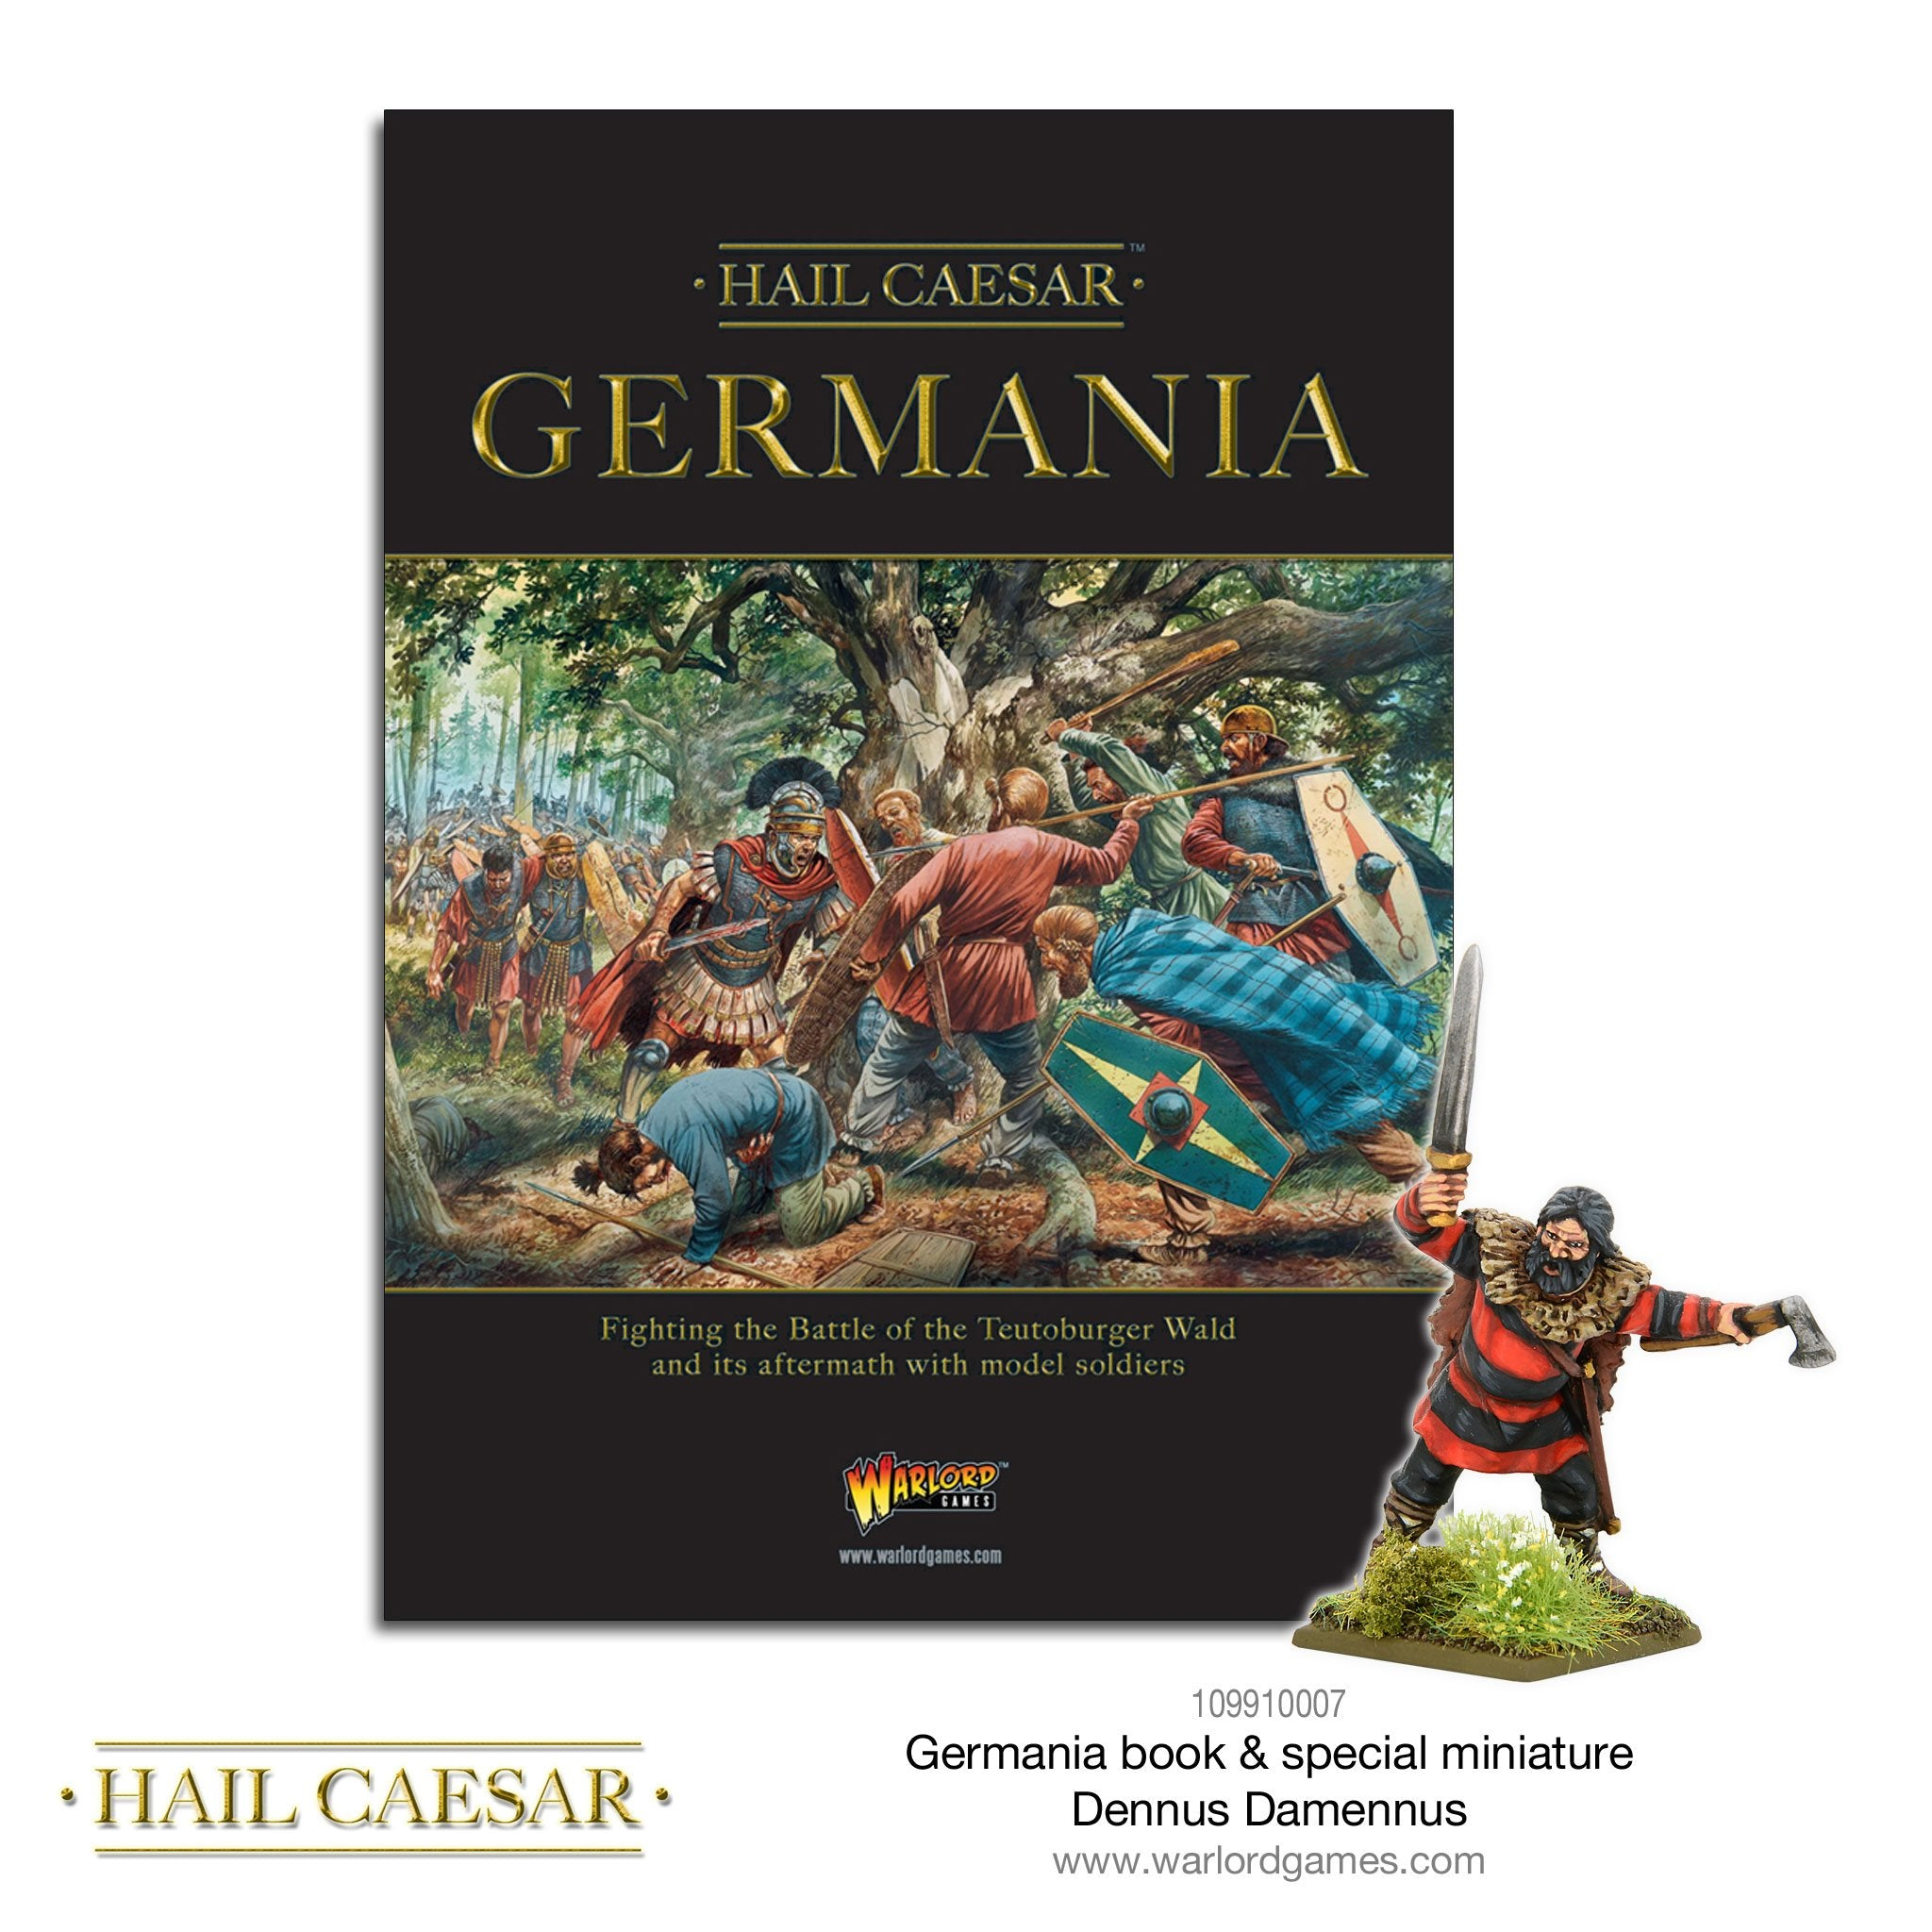 Germania - Hail Caesar Supplement | Mythicos